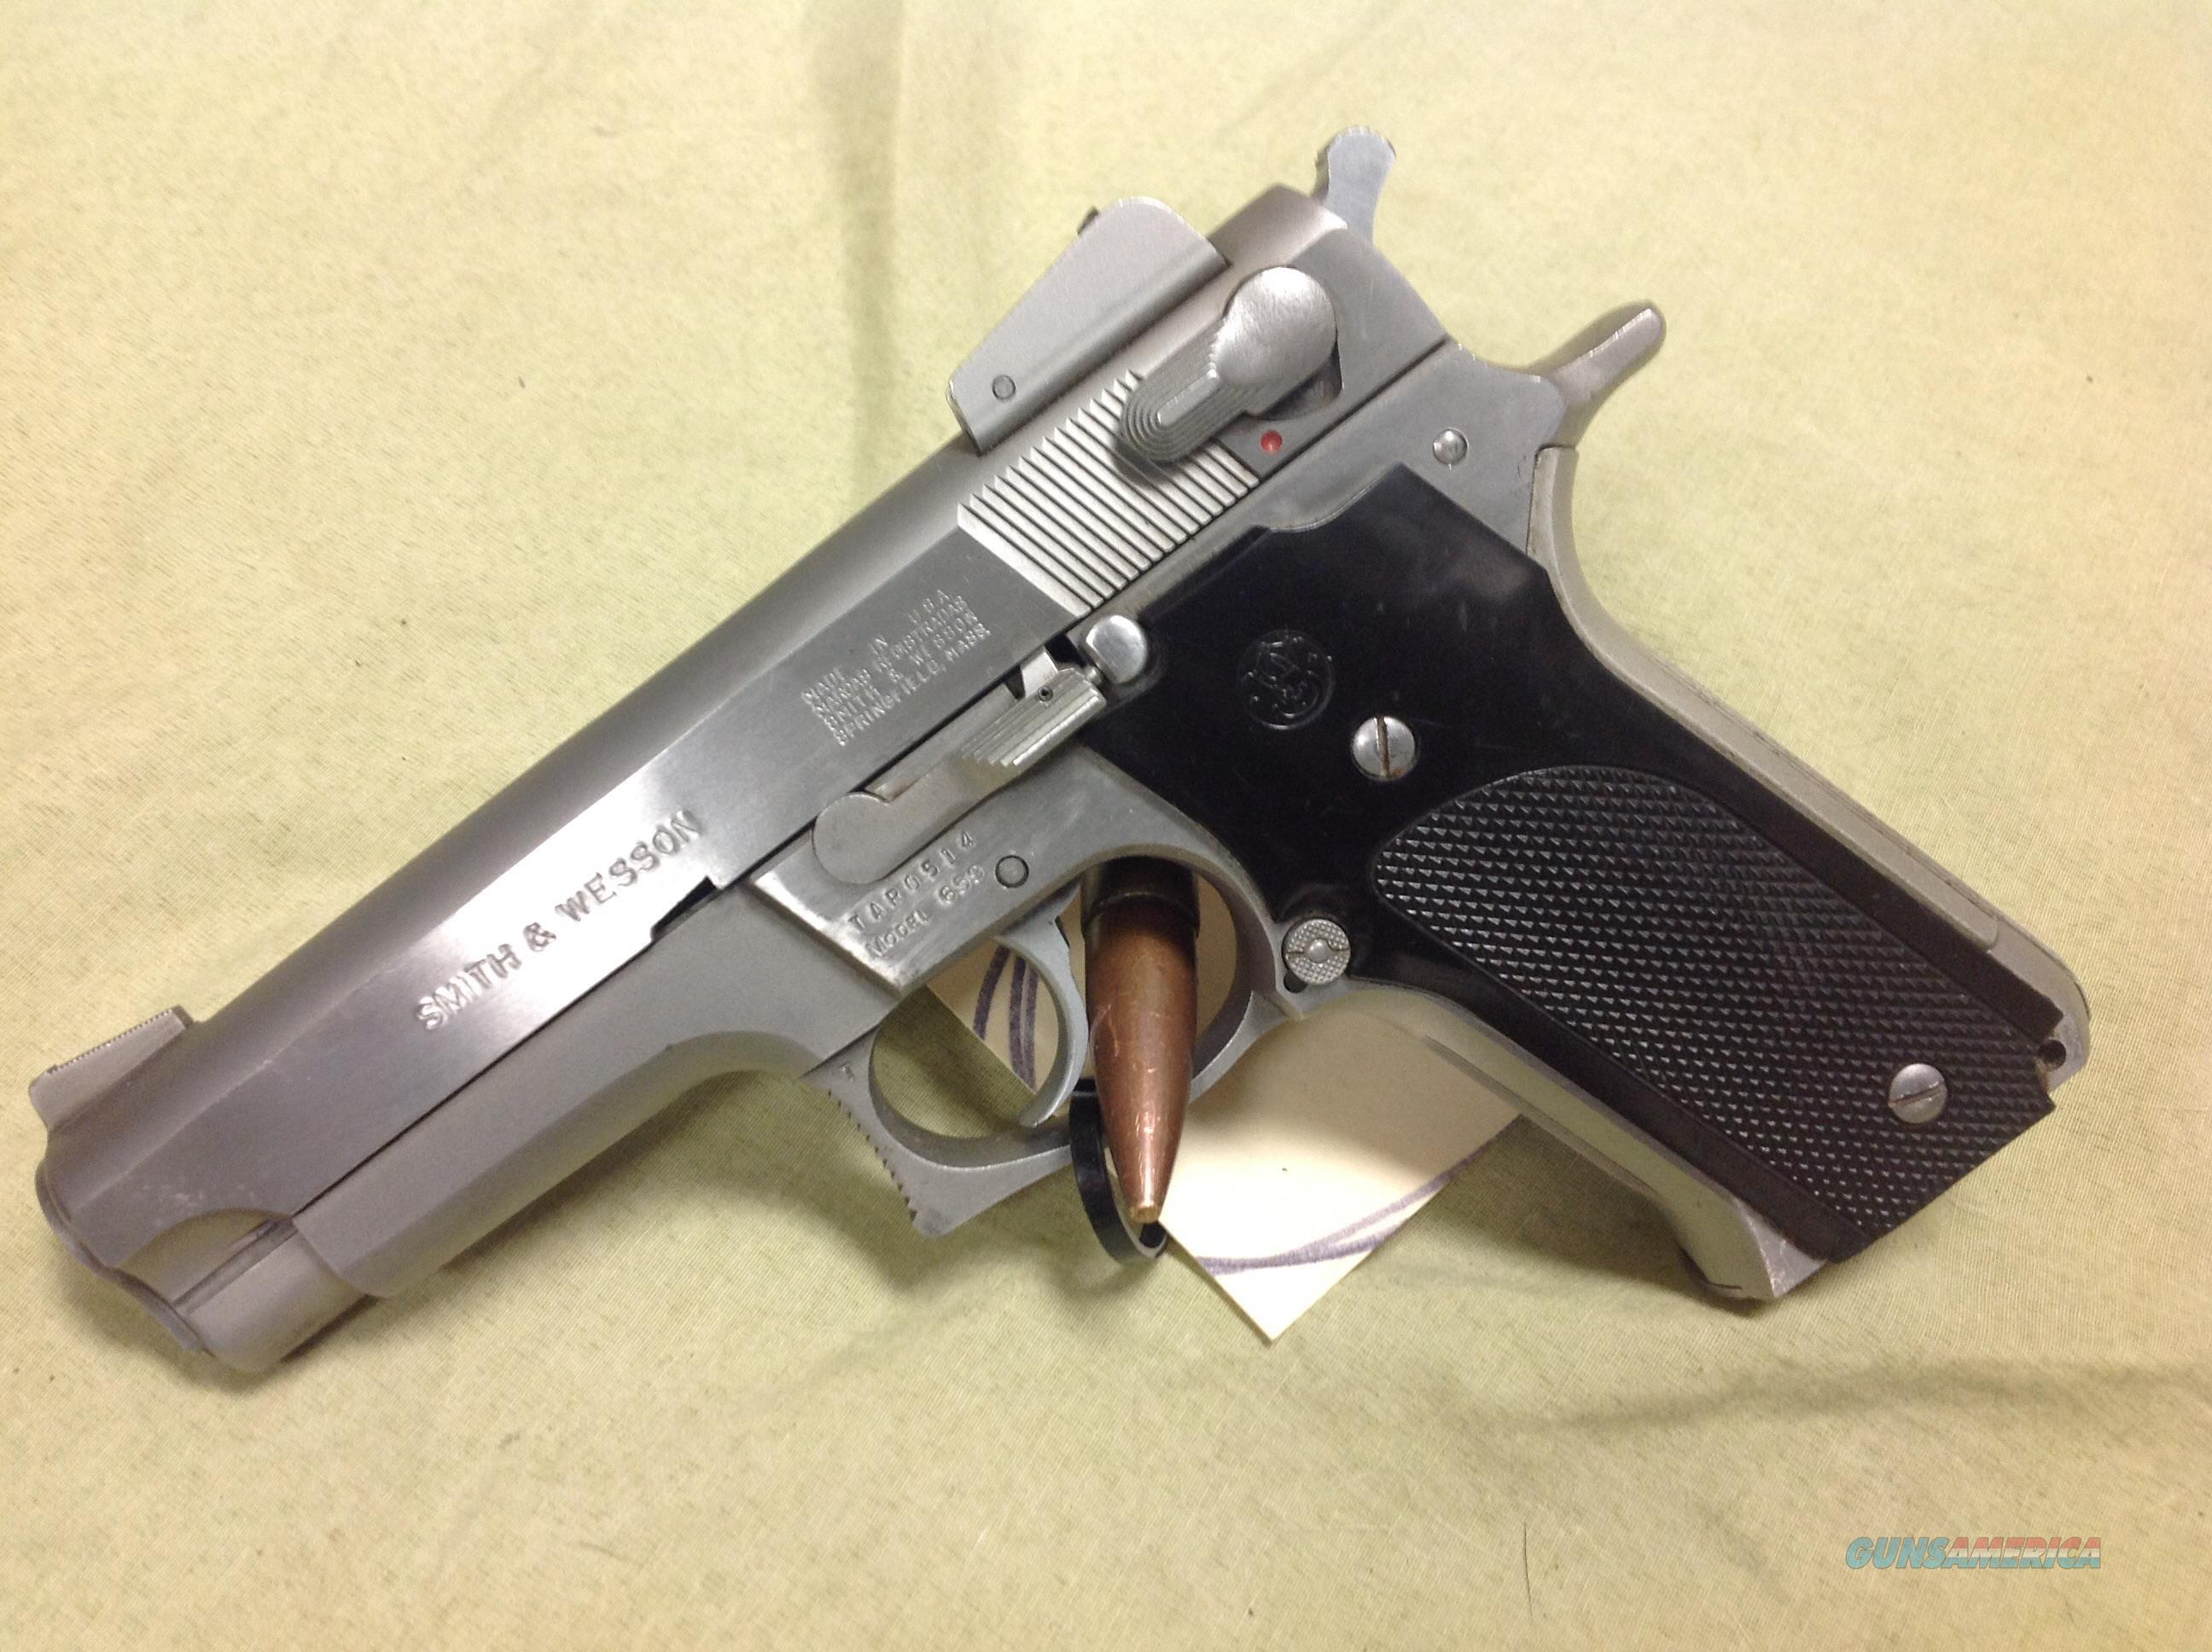 Smith & Wesson 659 Stainless. Adj sights  Guns > Pistols > Smith & Wesson Pistols - Autos > Steel Frame